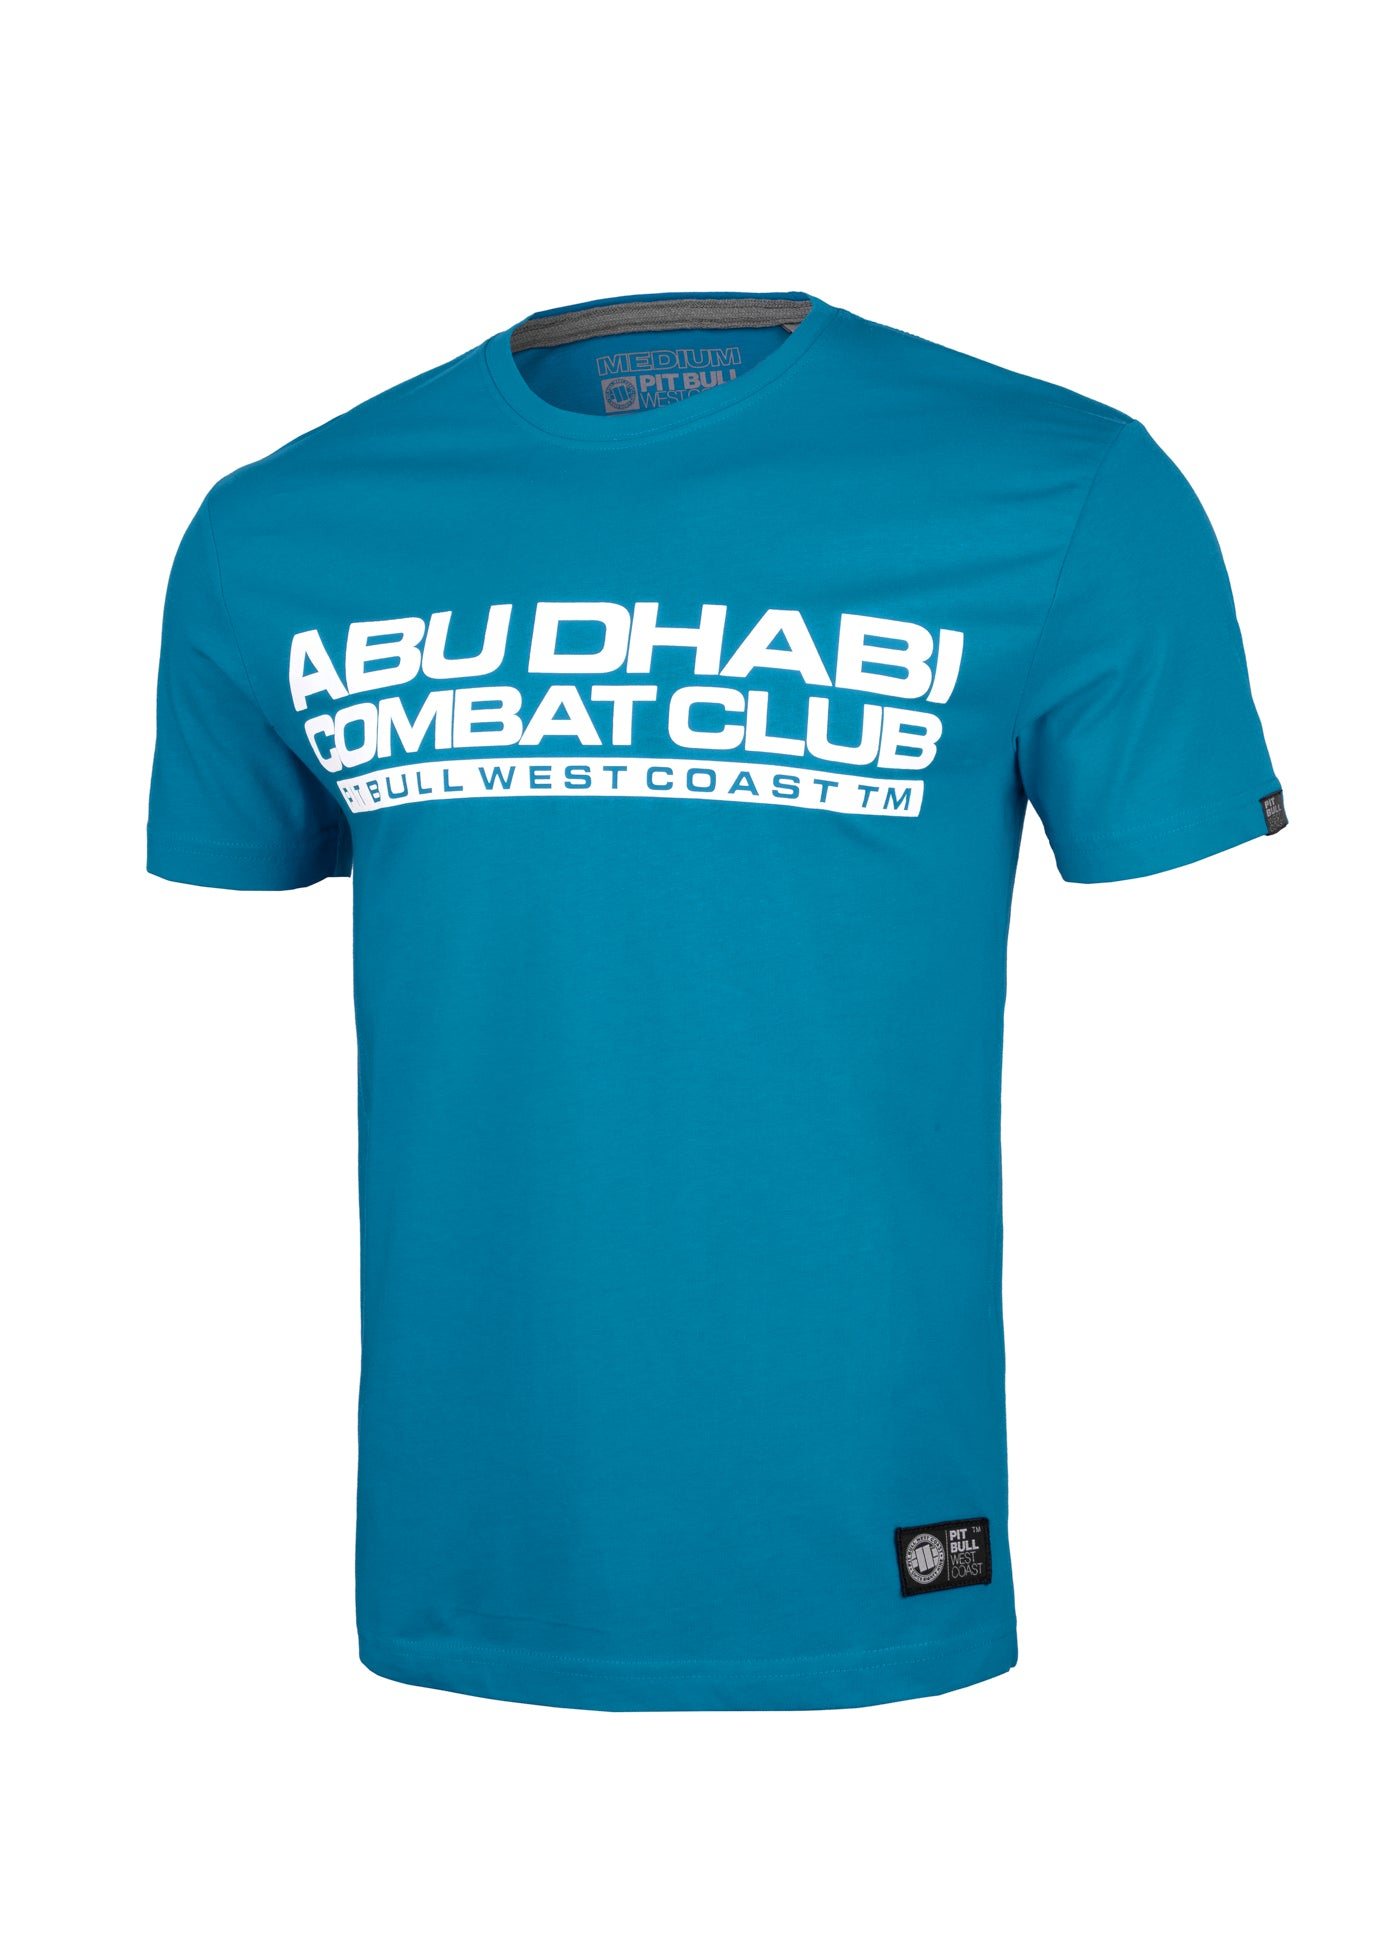 ADCC Abu Dhabi Combat Club T-shirt in turquoise